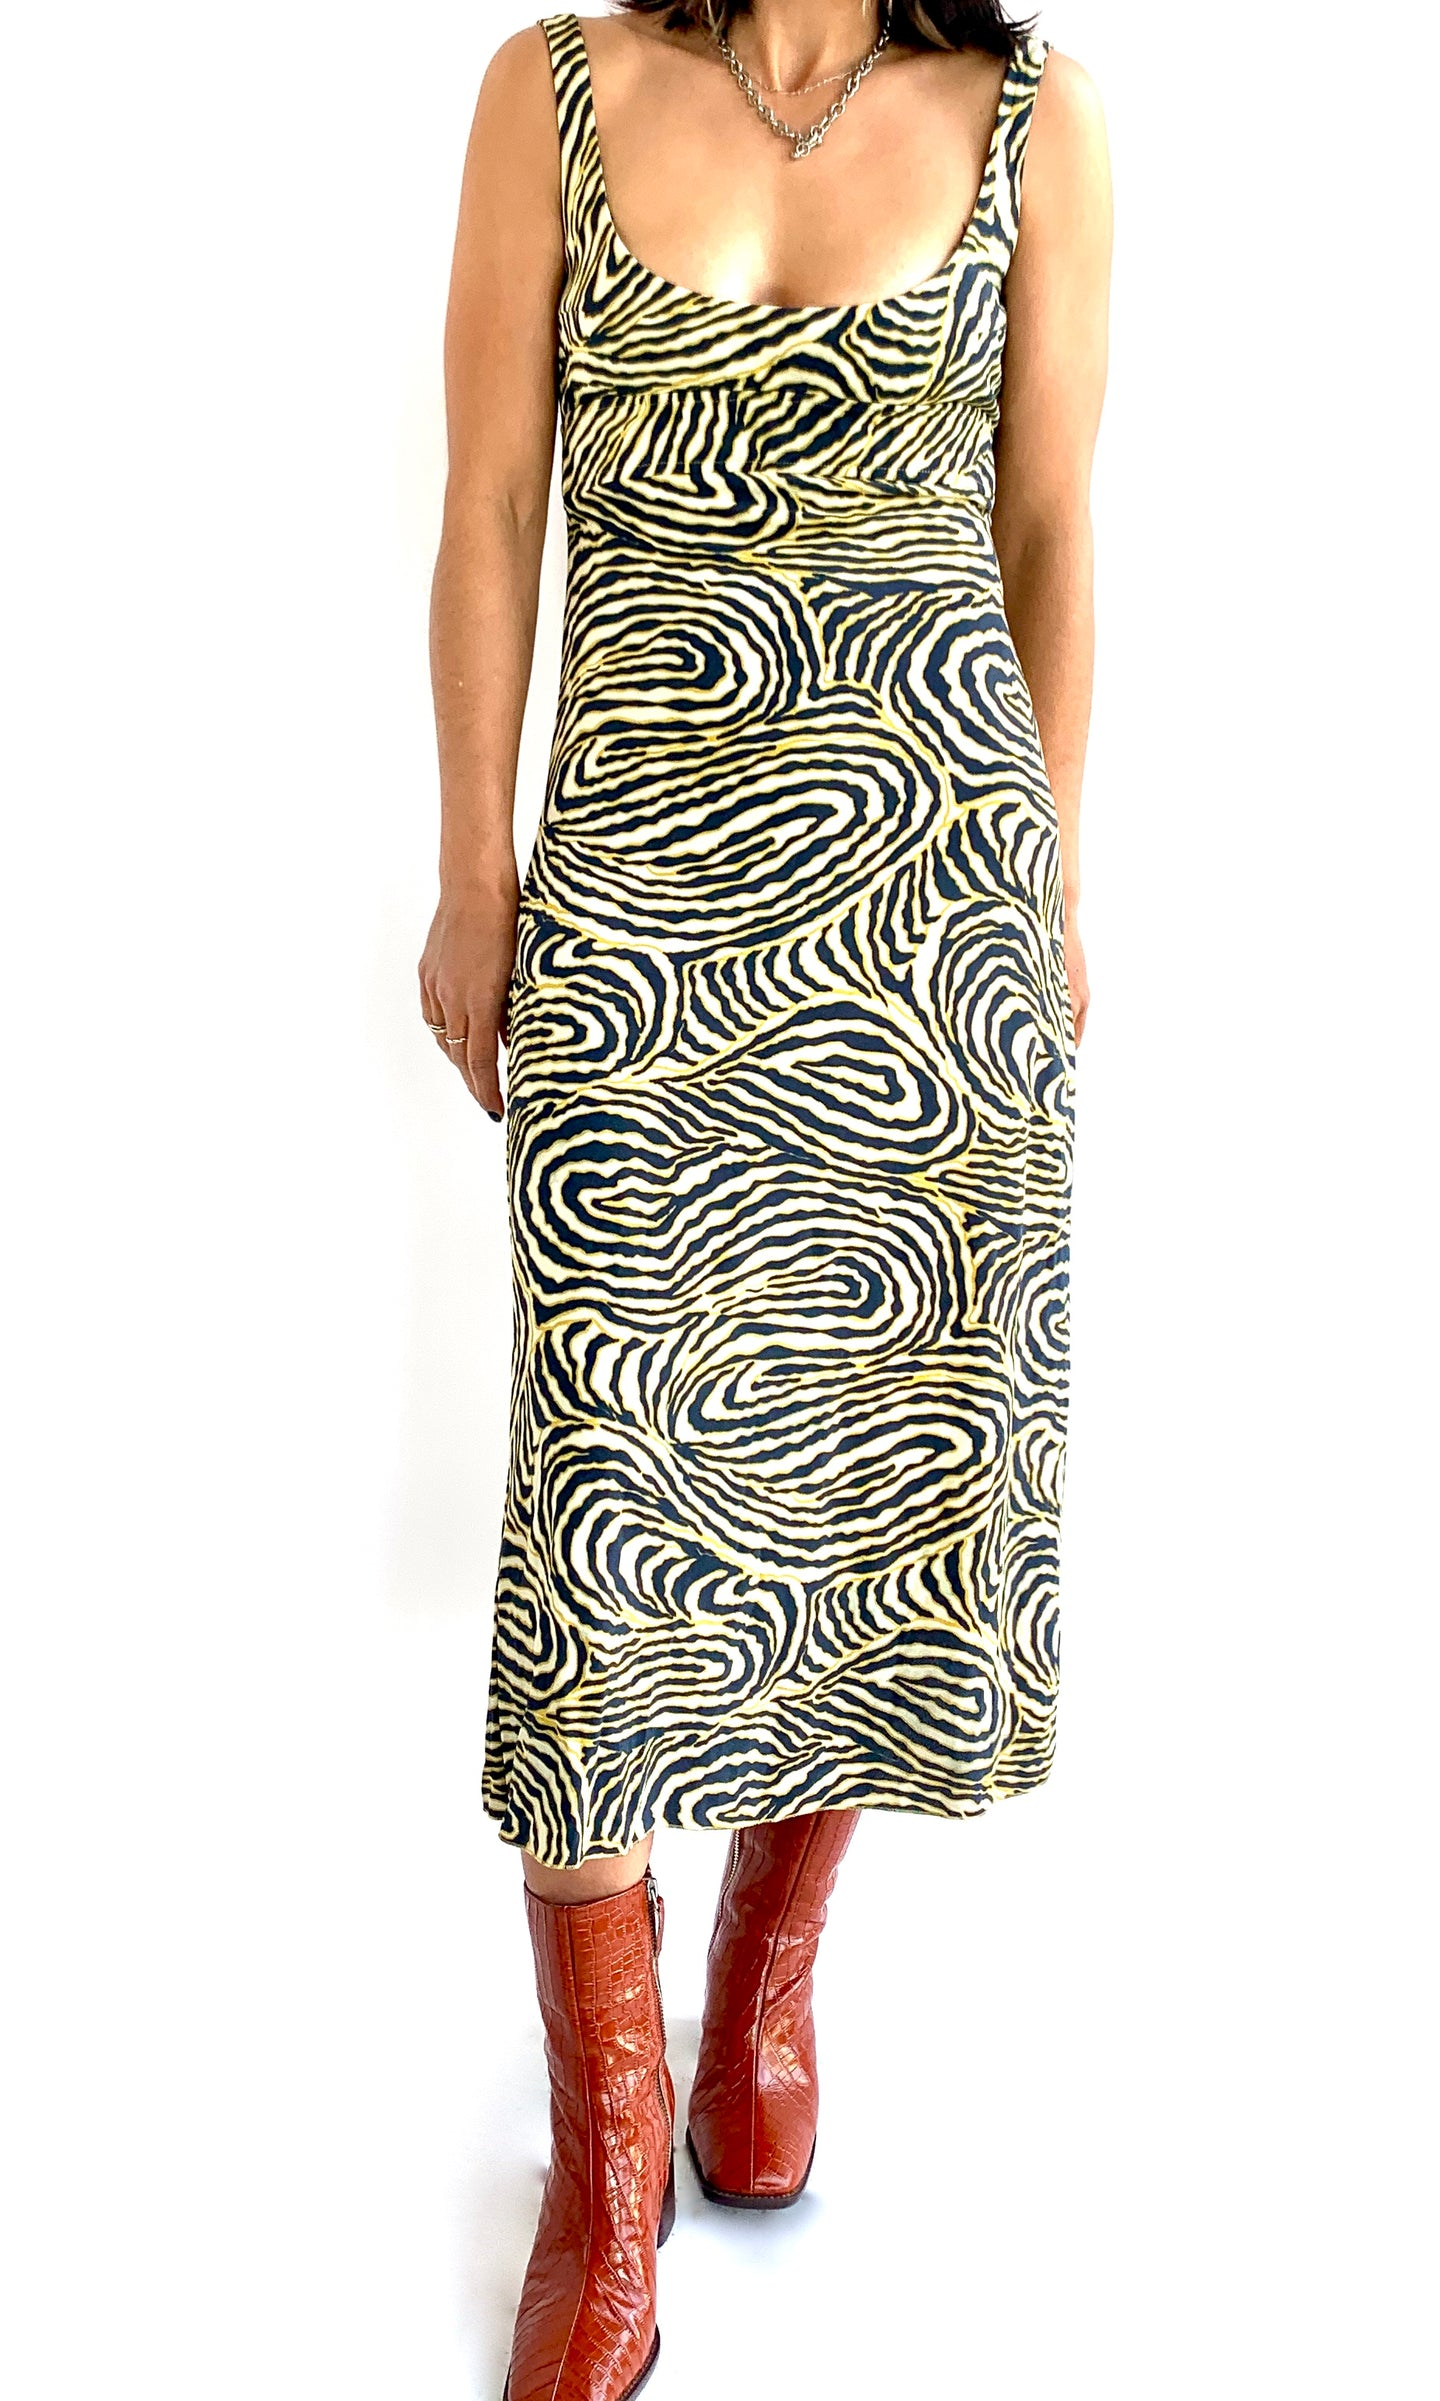 Anna Molinari Fingerprint Dress